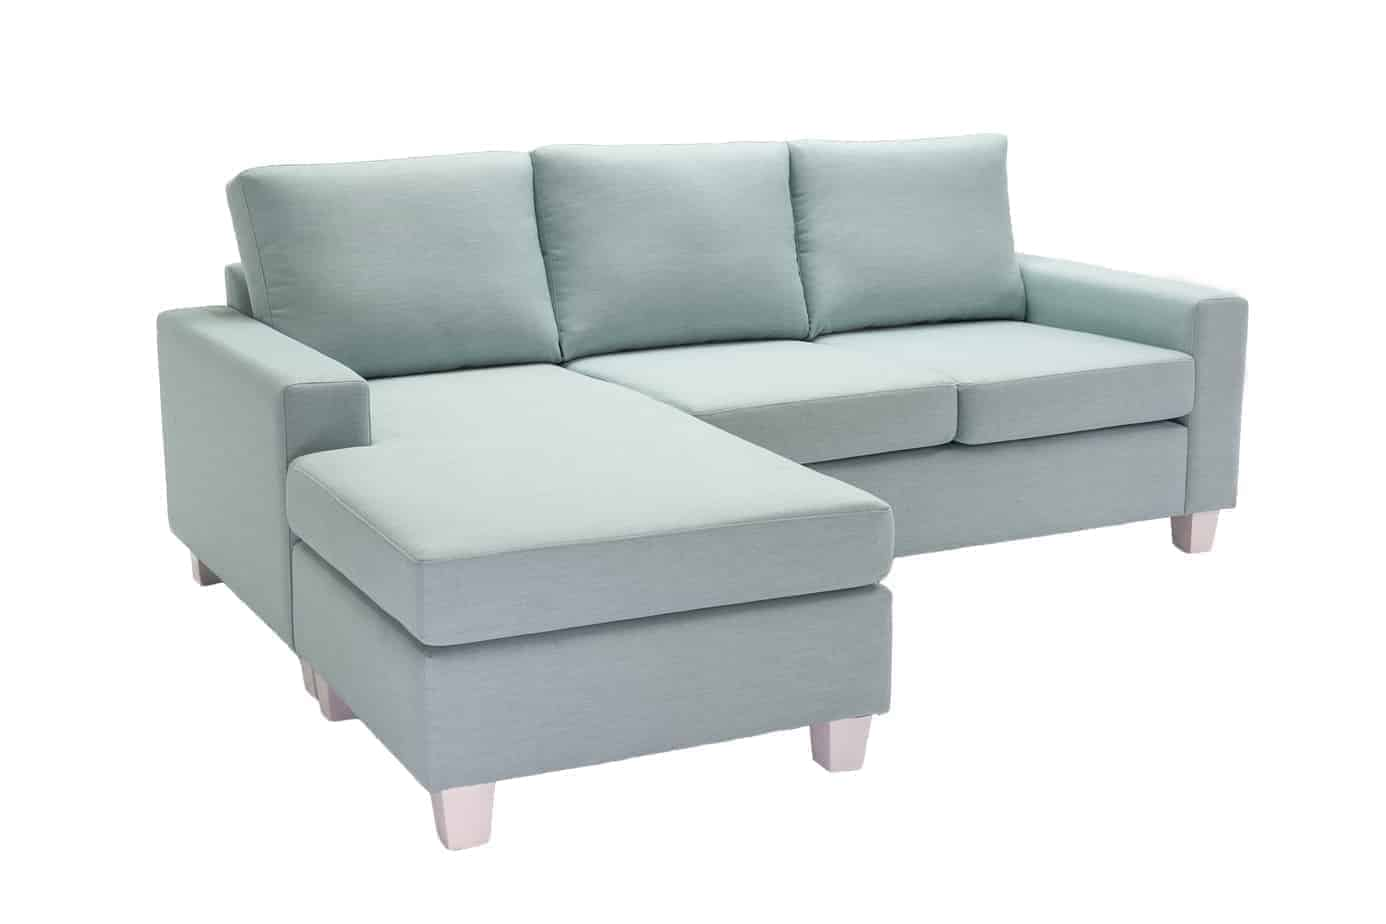 Preston 3 Seater Reversible Chaise Lounge